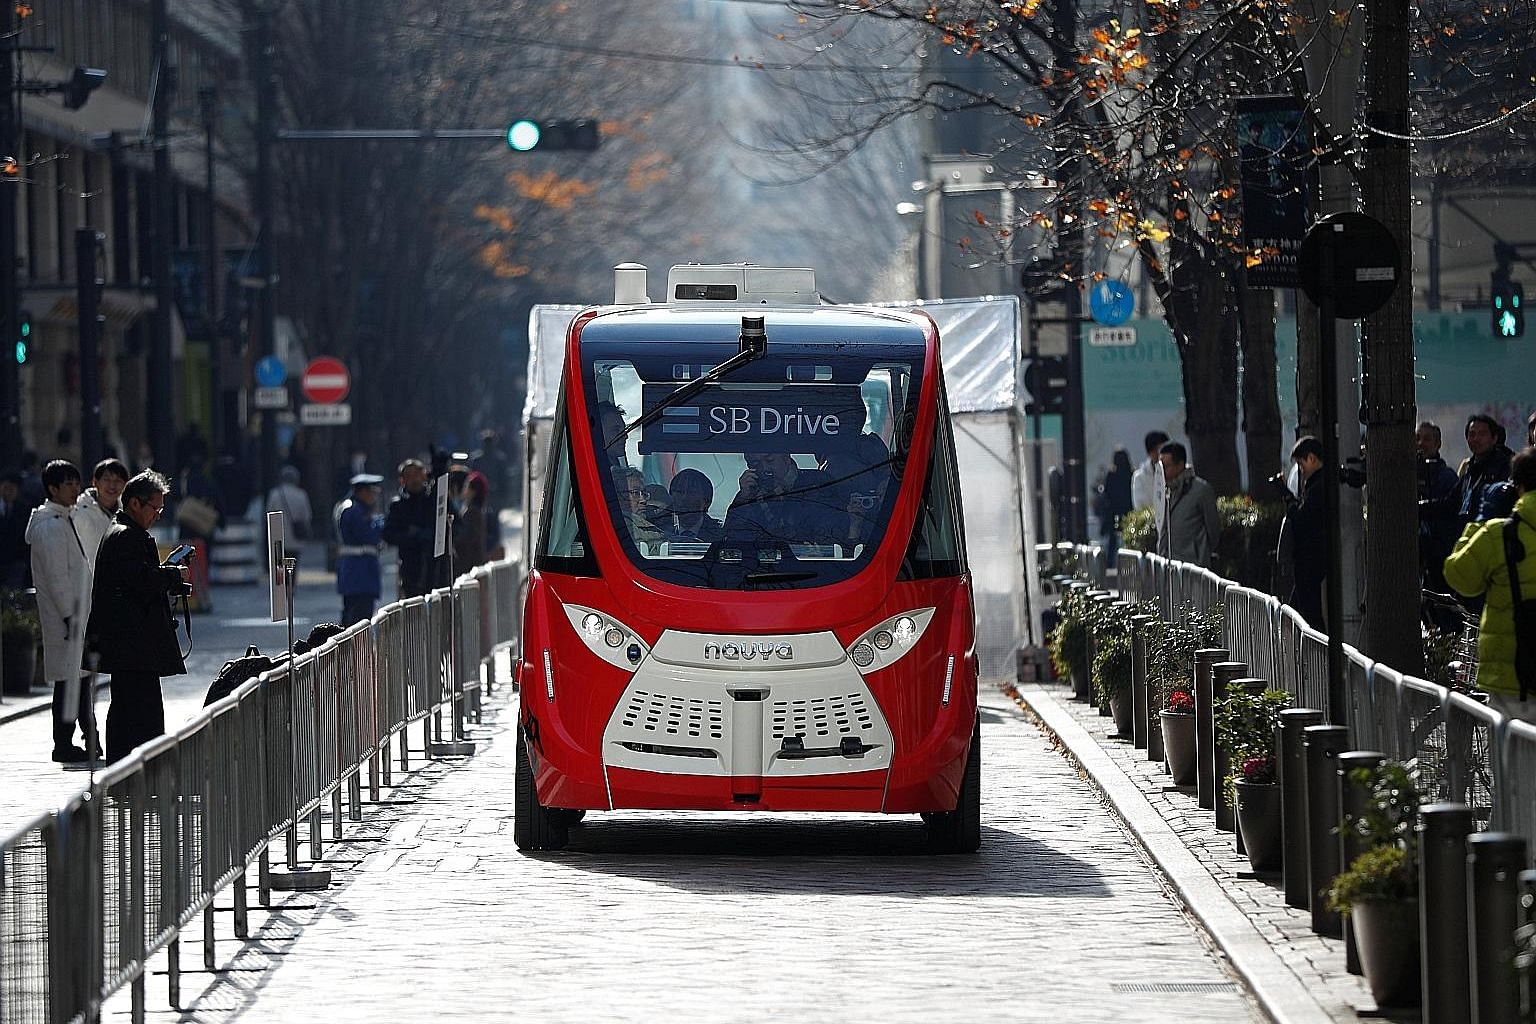 A self-driving bus in Japan. Even as the number of autonomous cars on US roads multiplies, there is still no serious discussion of their shortcomings, says the writer who identifies five key problems.